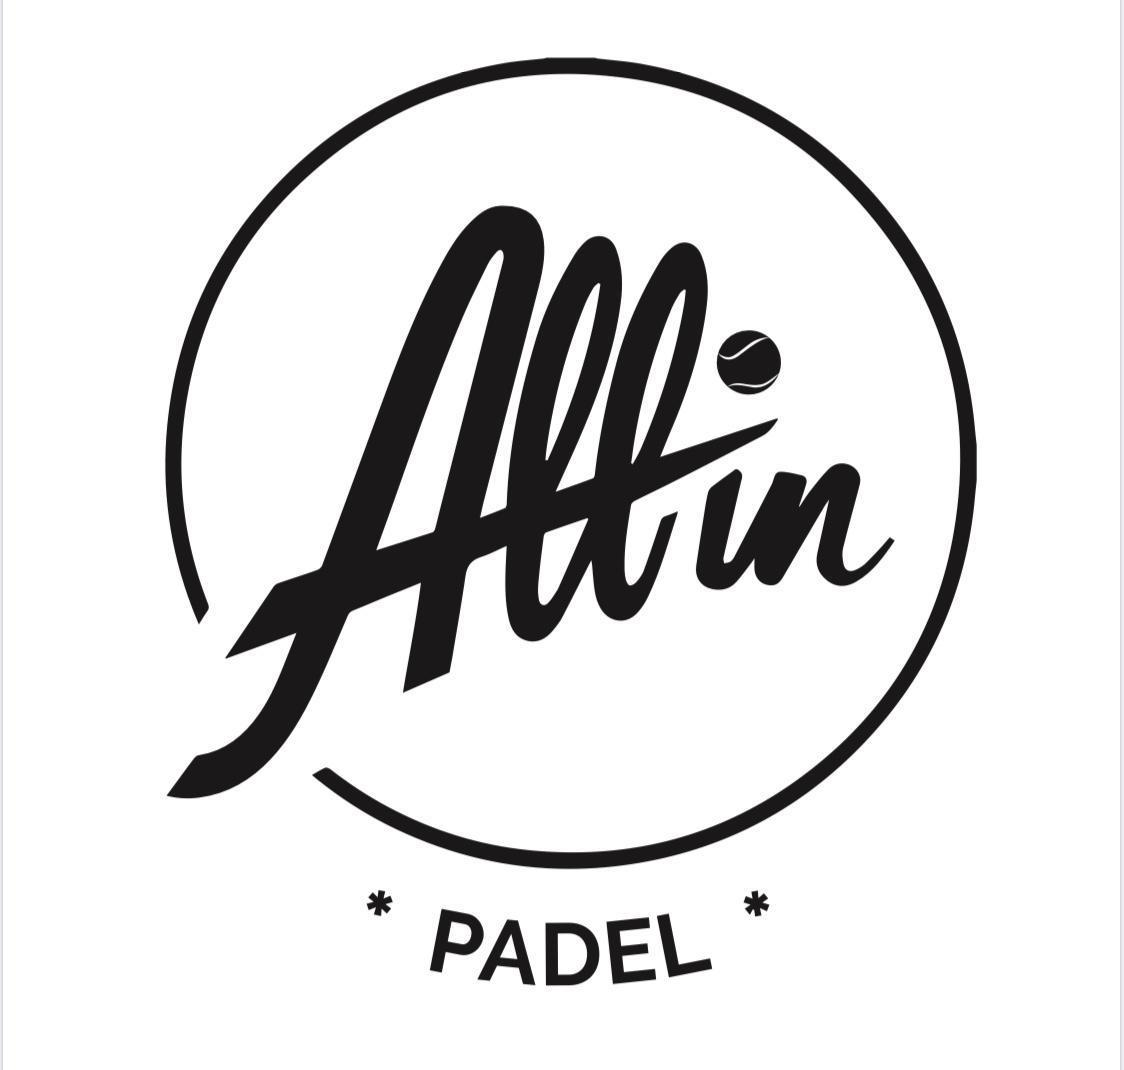 工作机会:All In Padel正在招聘